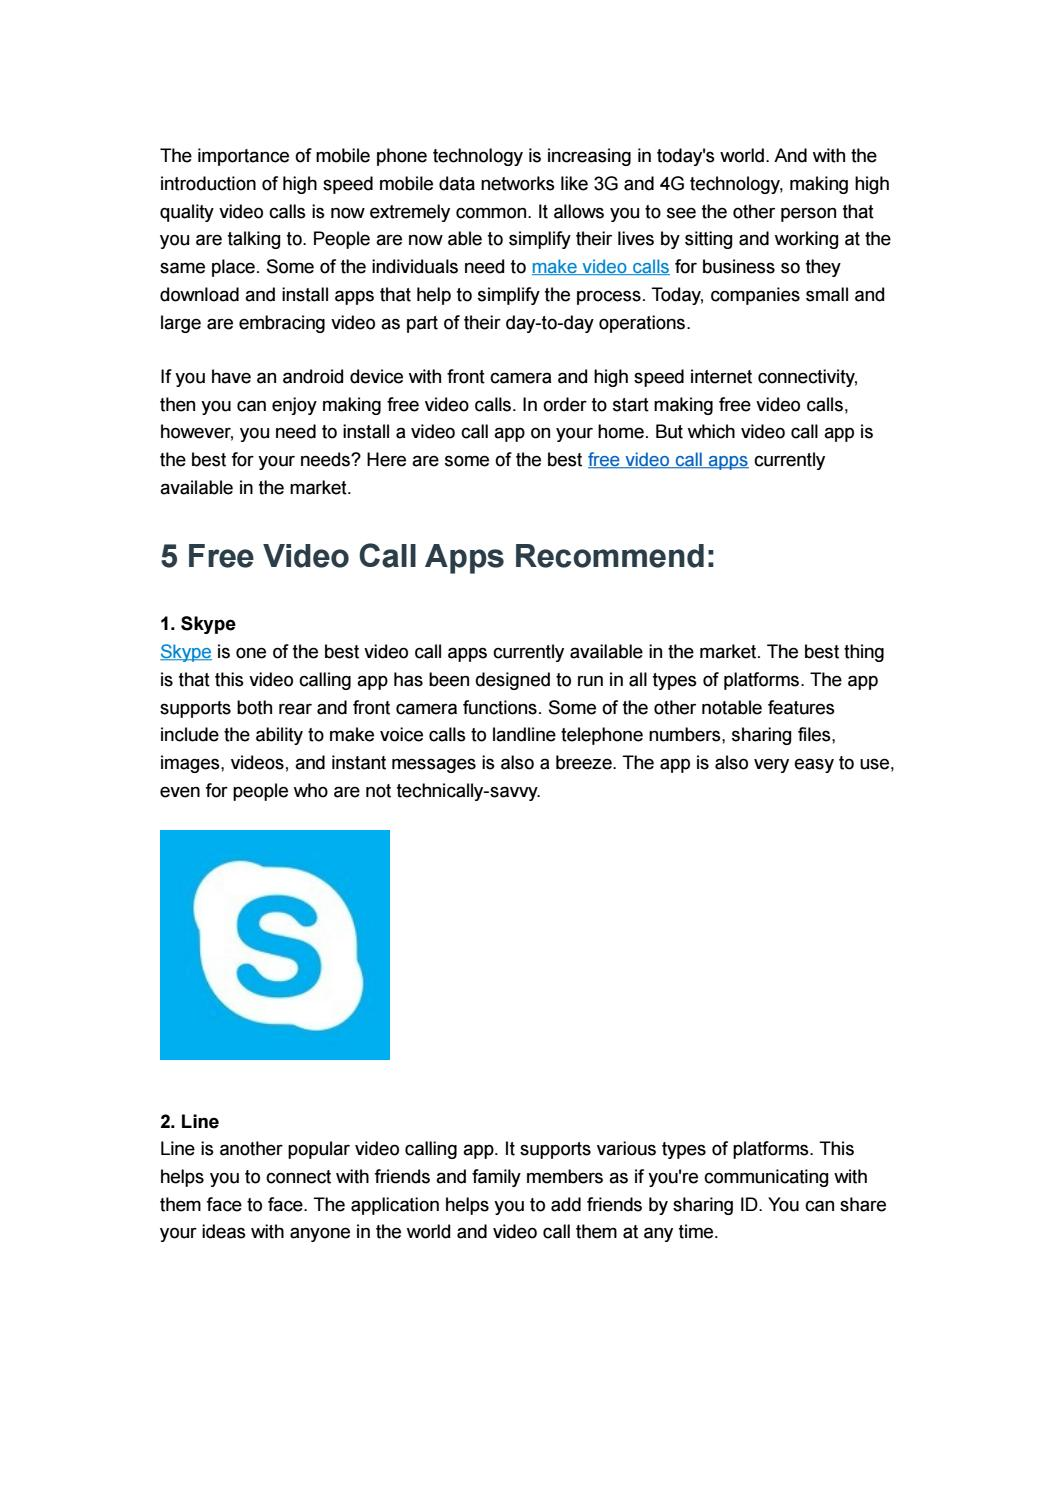 5 Free Video Call Apps by ezTalks - issuu